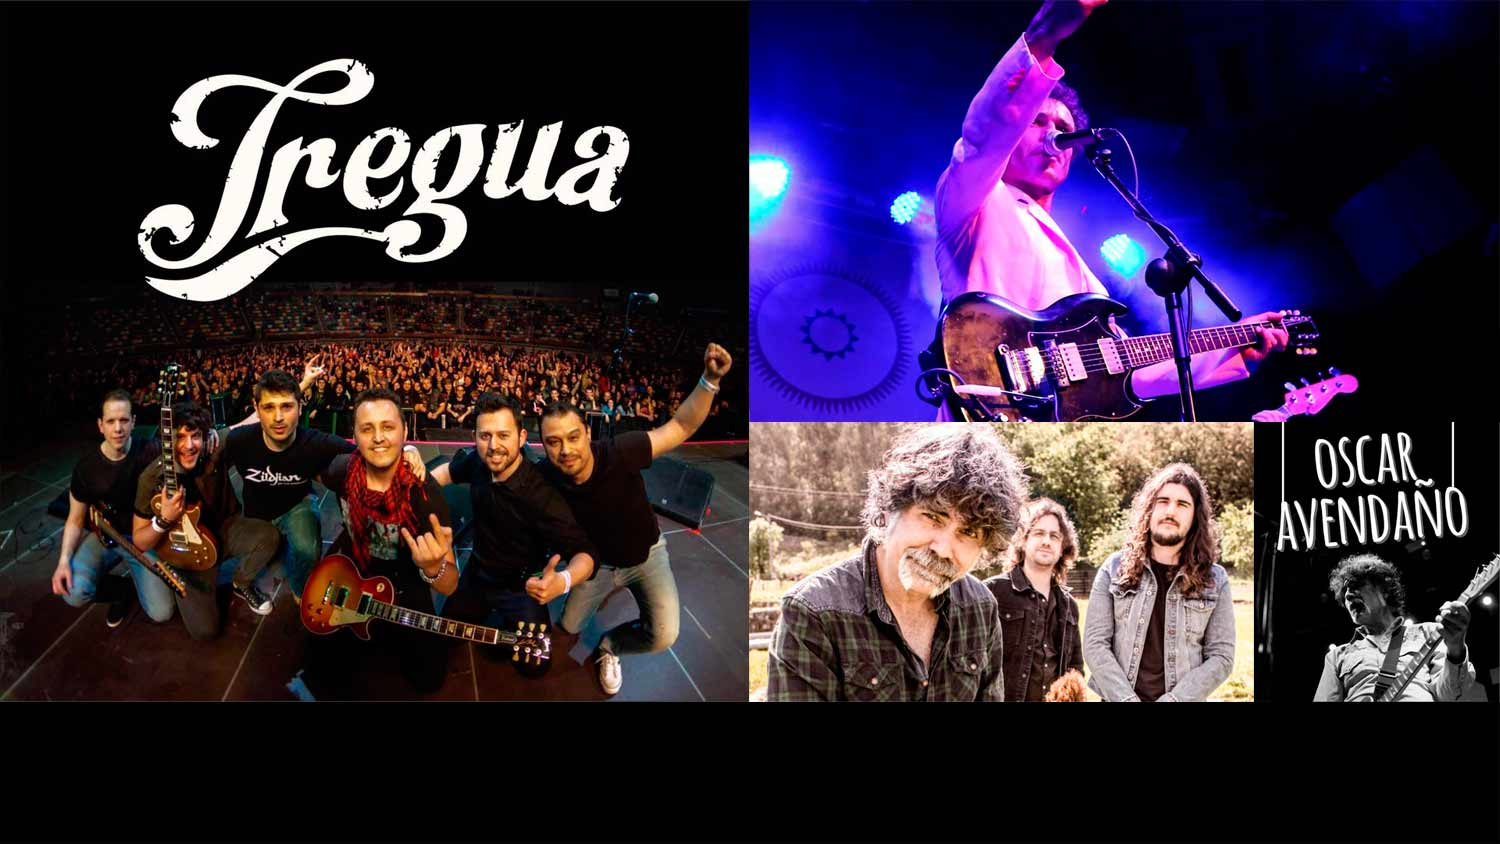 Tregua, Avendaño, The Criers….videoclips para todos